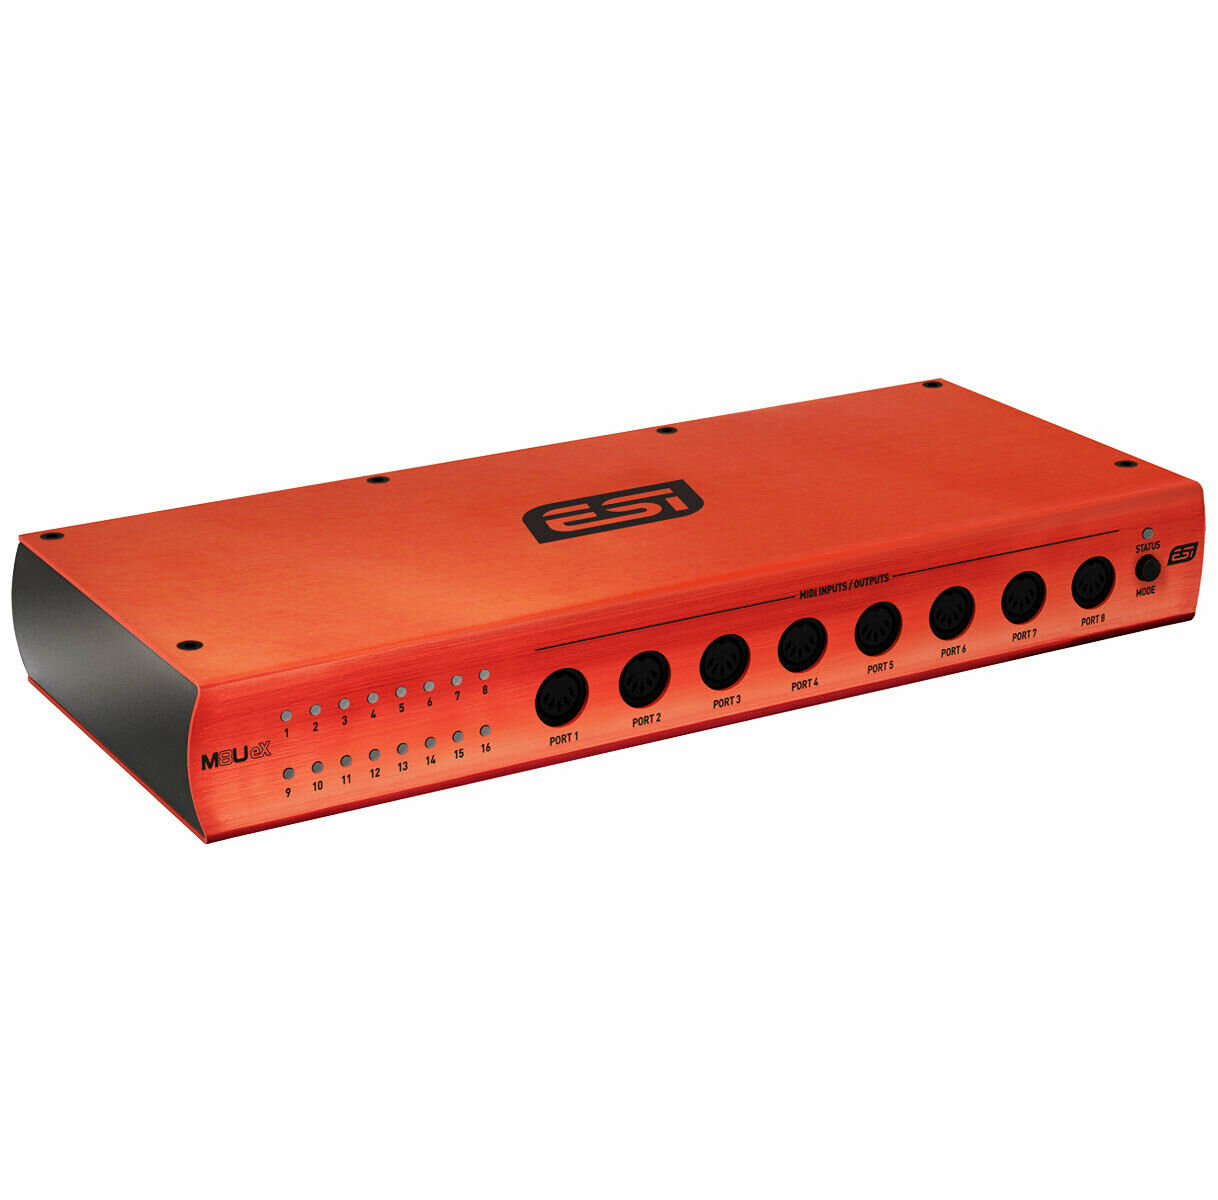 Esi M8U Ex USB 3.0 Midi-Interfaccia con 16 Ports